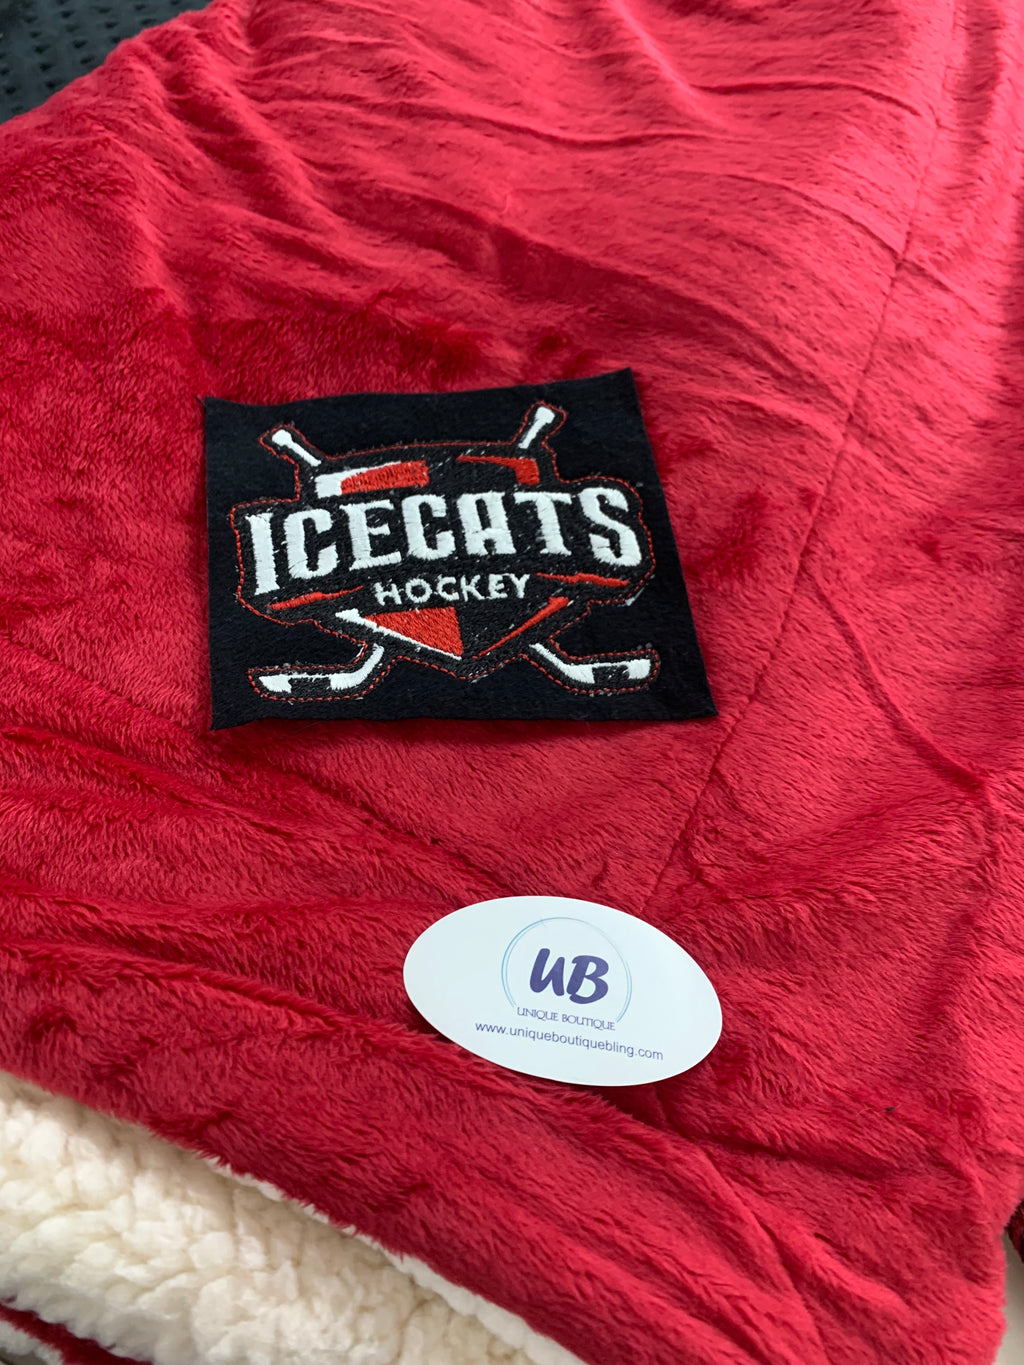 Red Minky Sherpa Blanket with Embroidered Ice Cats